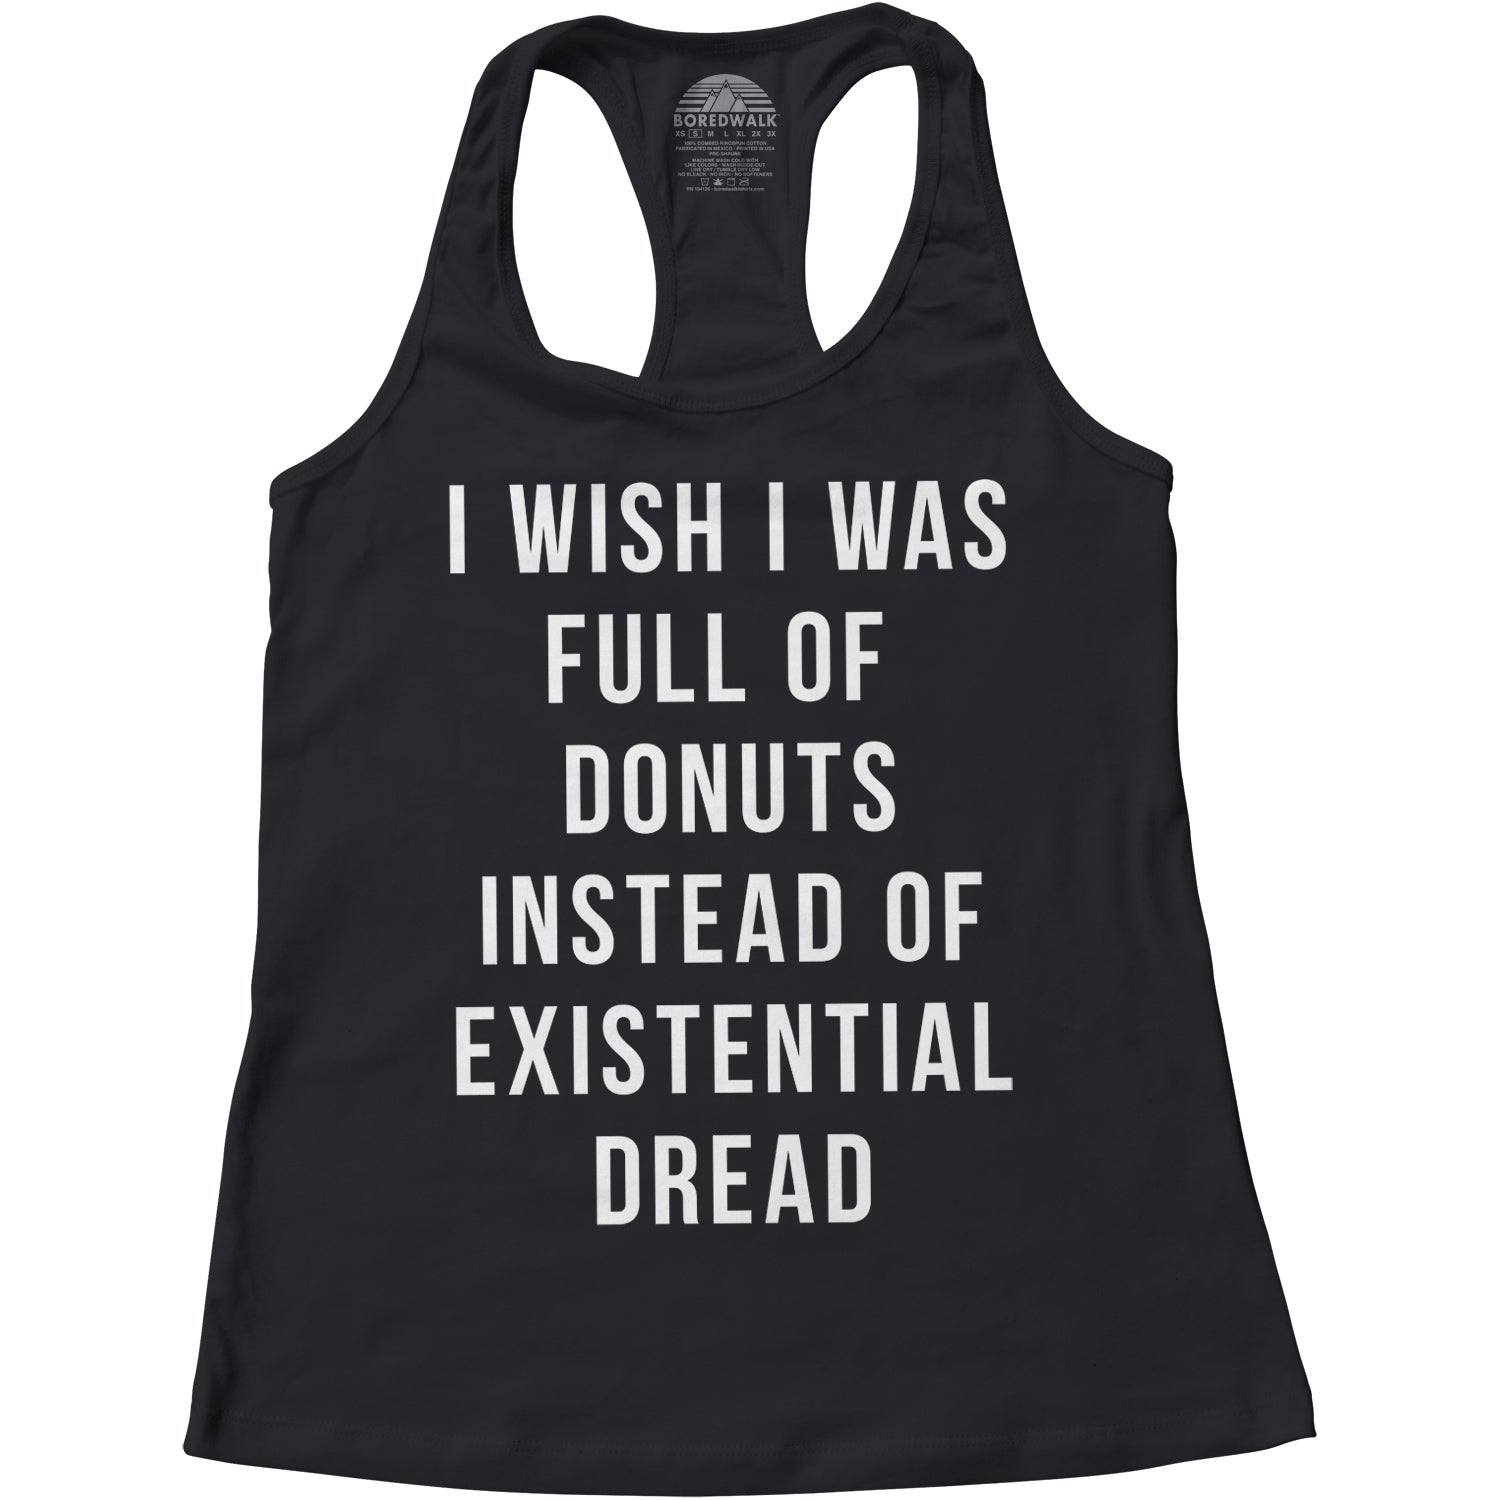 Women's I Wish I Was Full of Donuts Instead of Existential Dread Racerback Tank Top